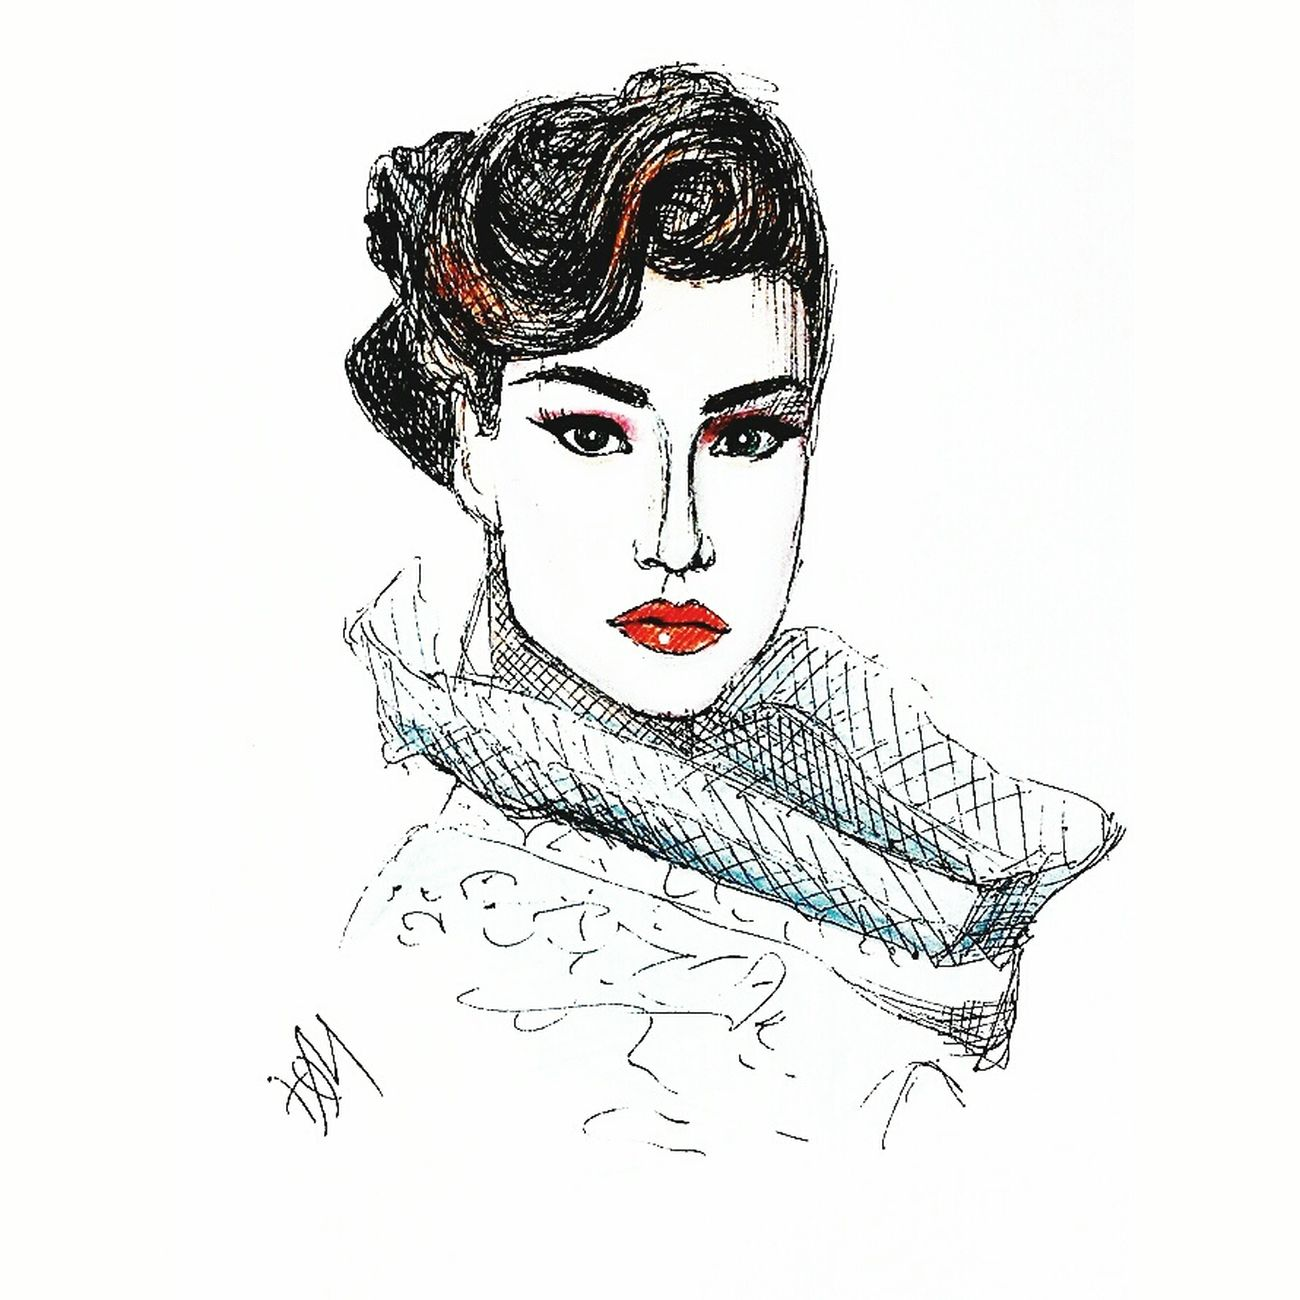 Fashionillustration Drawing Quicksketch Pen Graphic